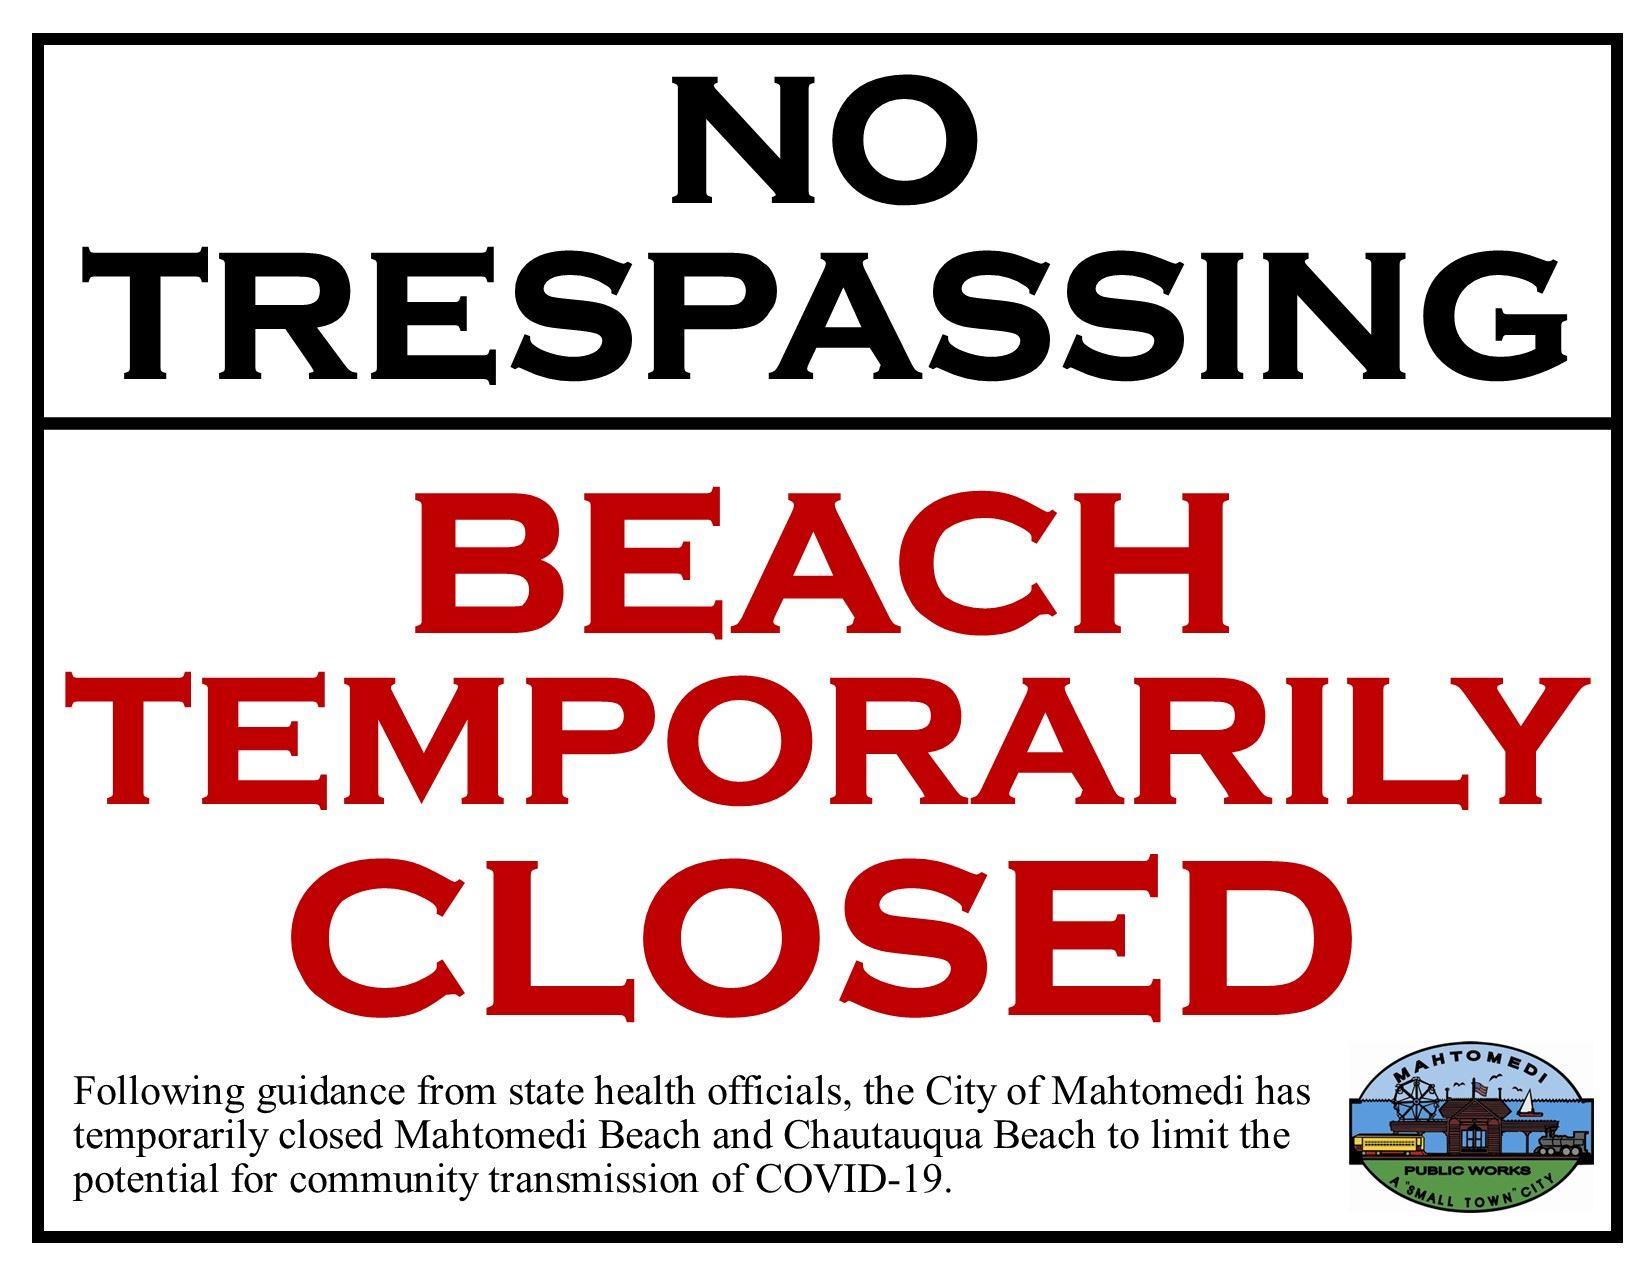 Covid-19 Beach Closed (IMAGE)